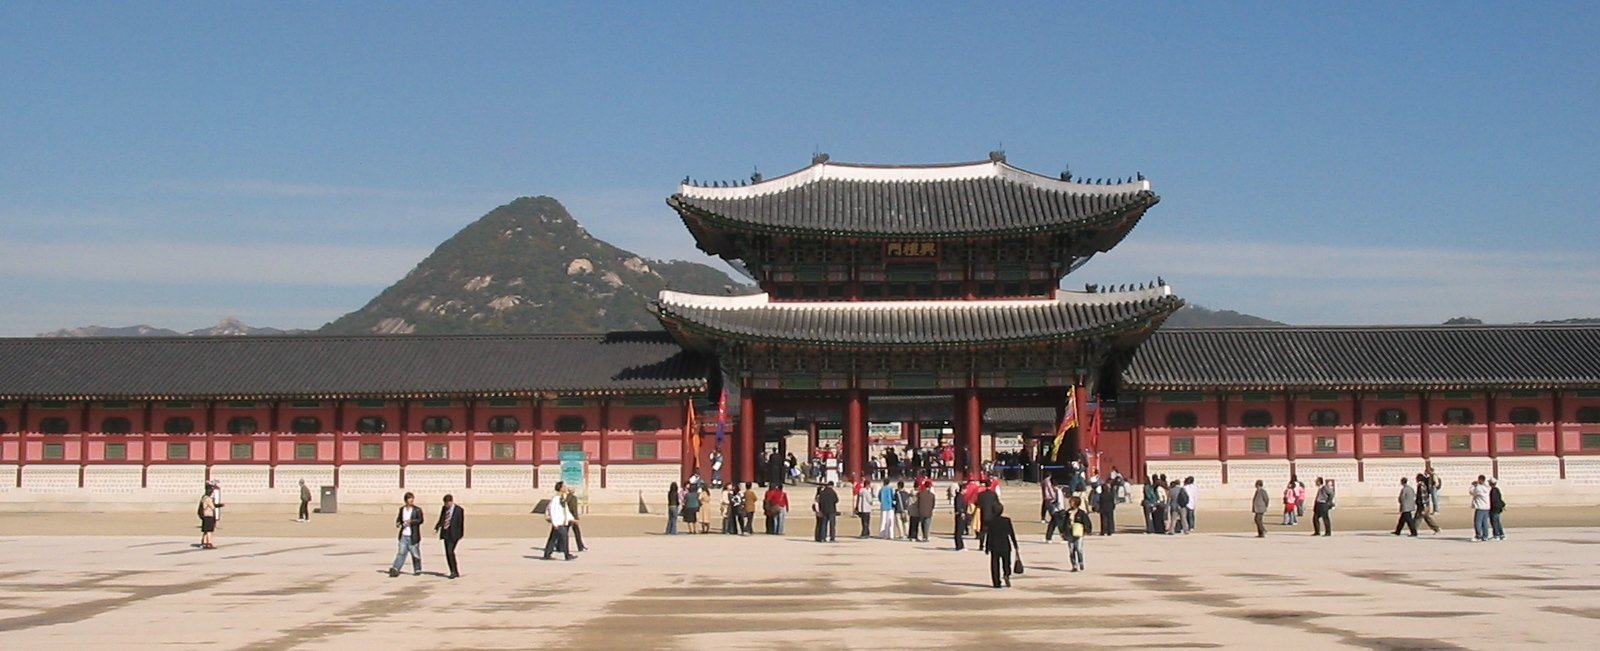 FileSeoul Gyeongbokgung Palace Exterior View